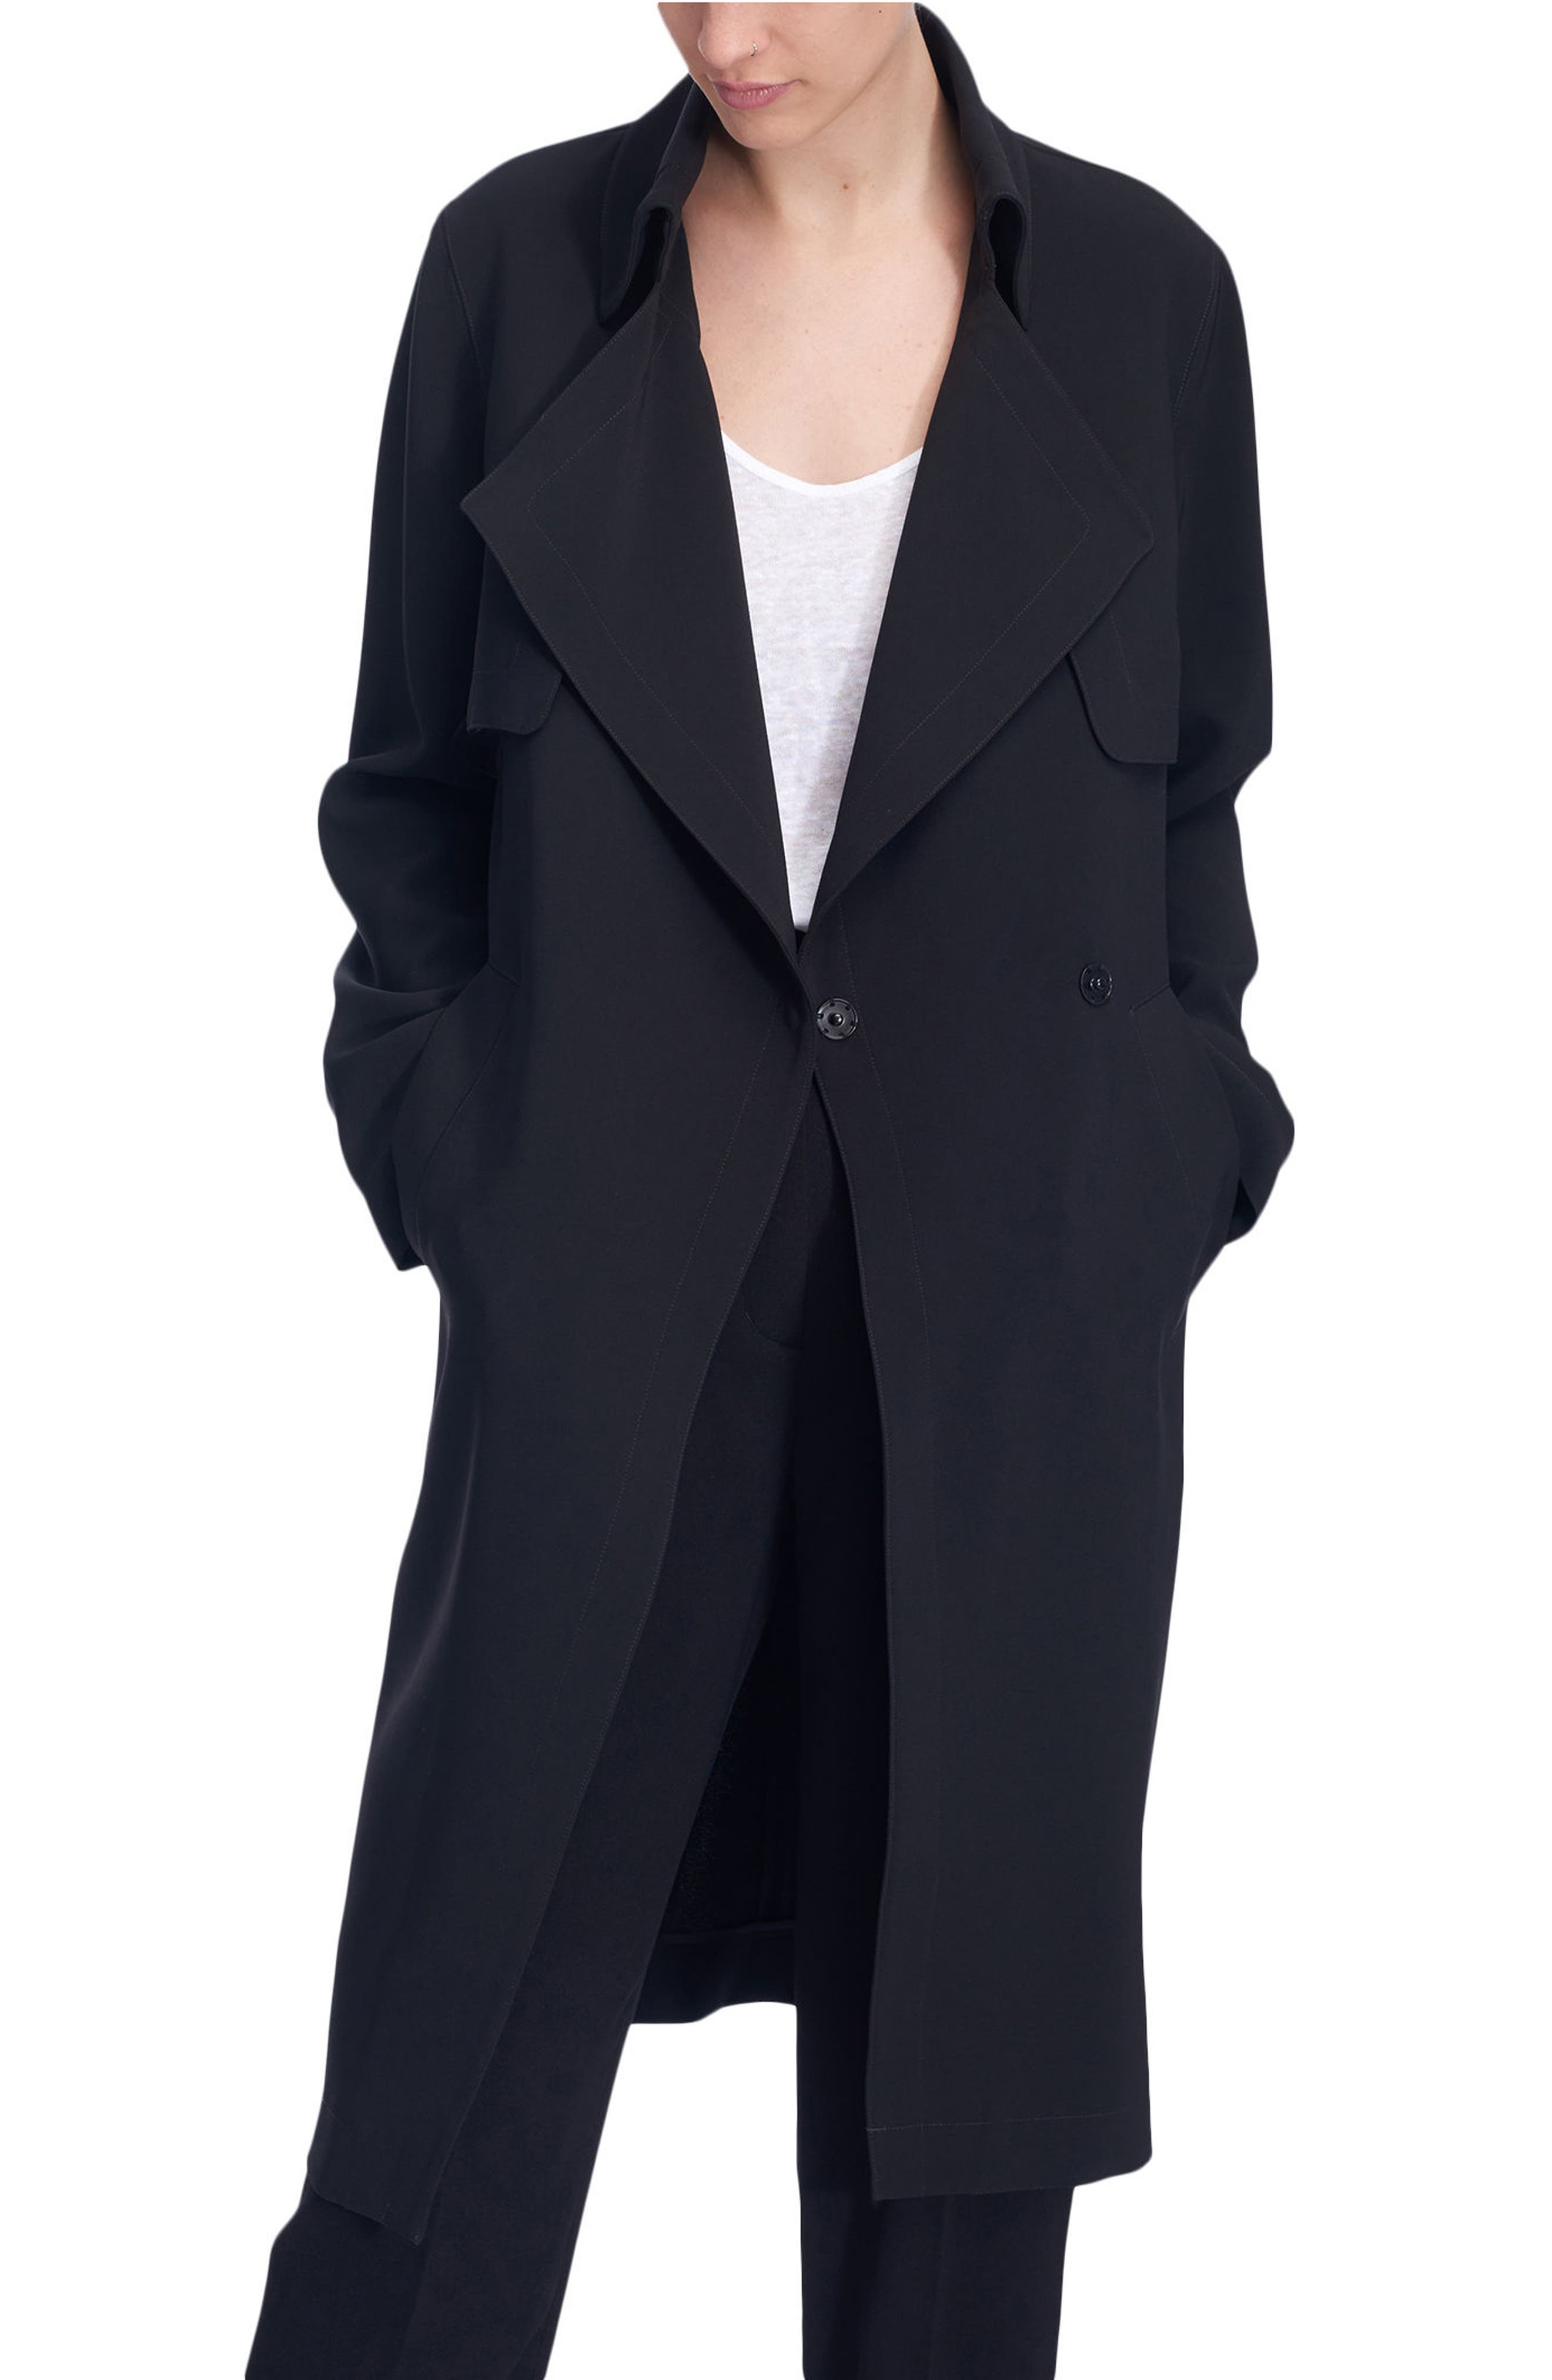 Long Duster Coat,                             Main thumbnail 1, color,                             001